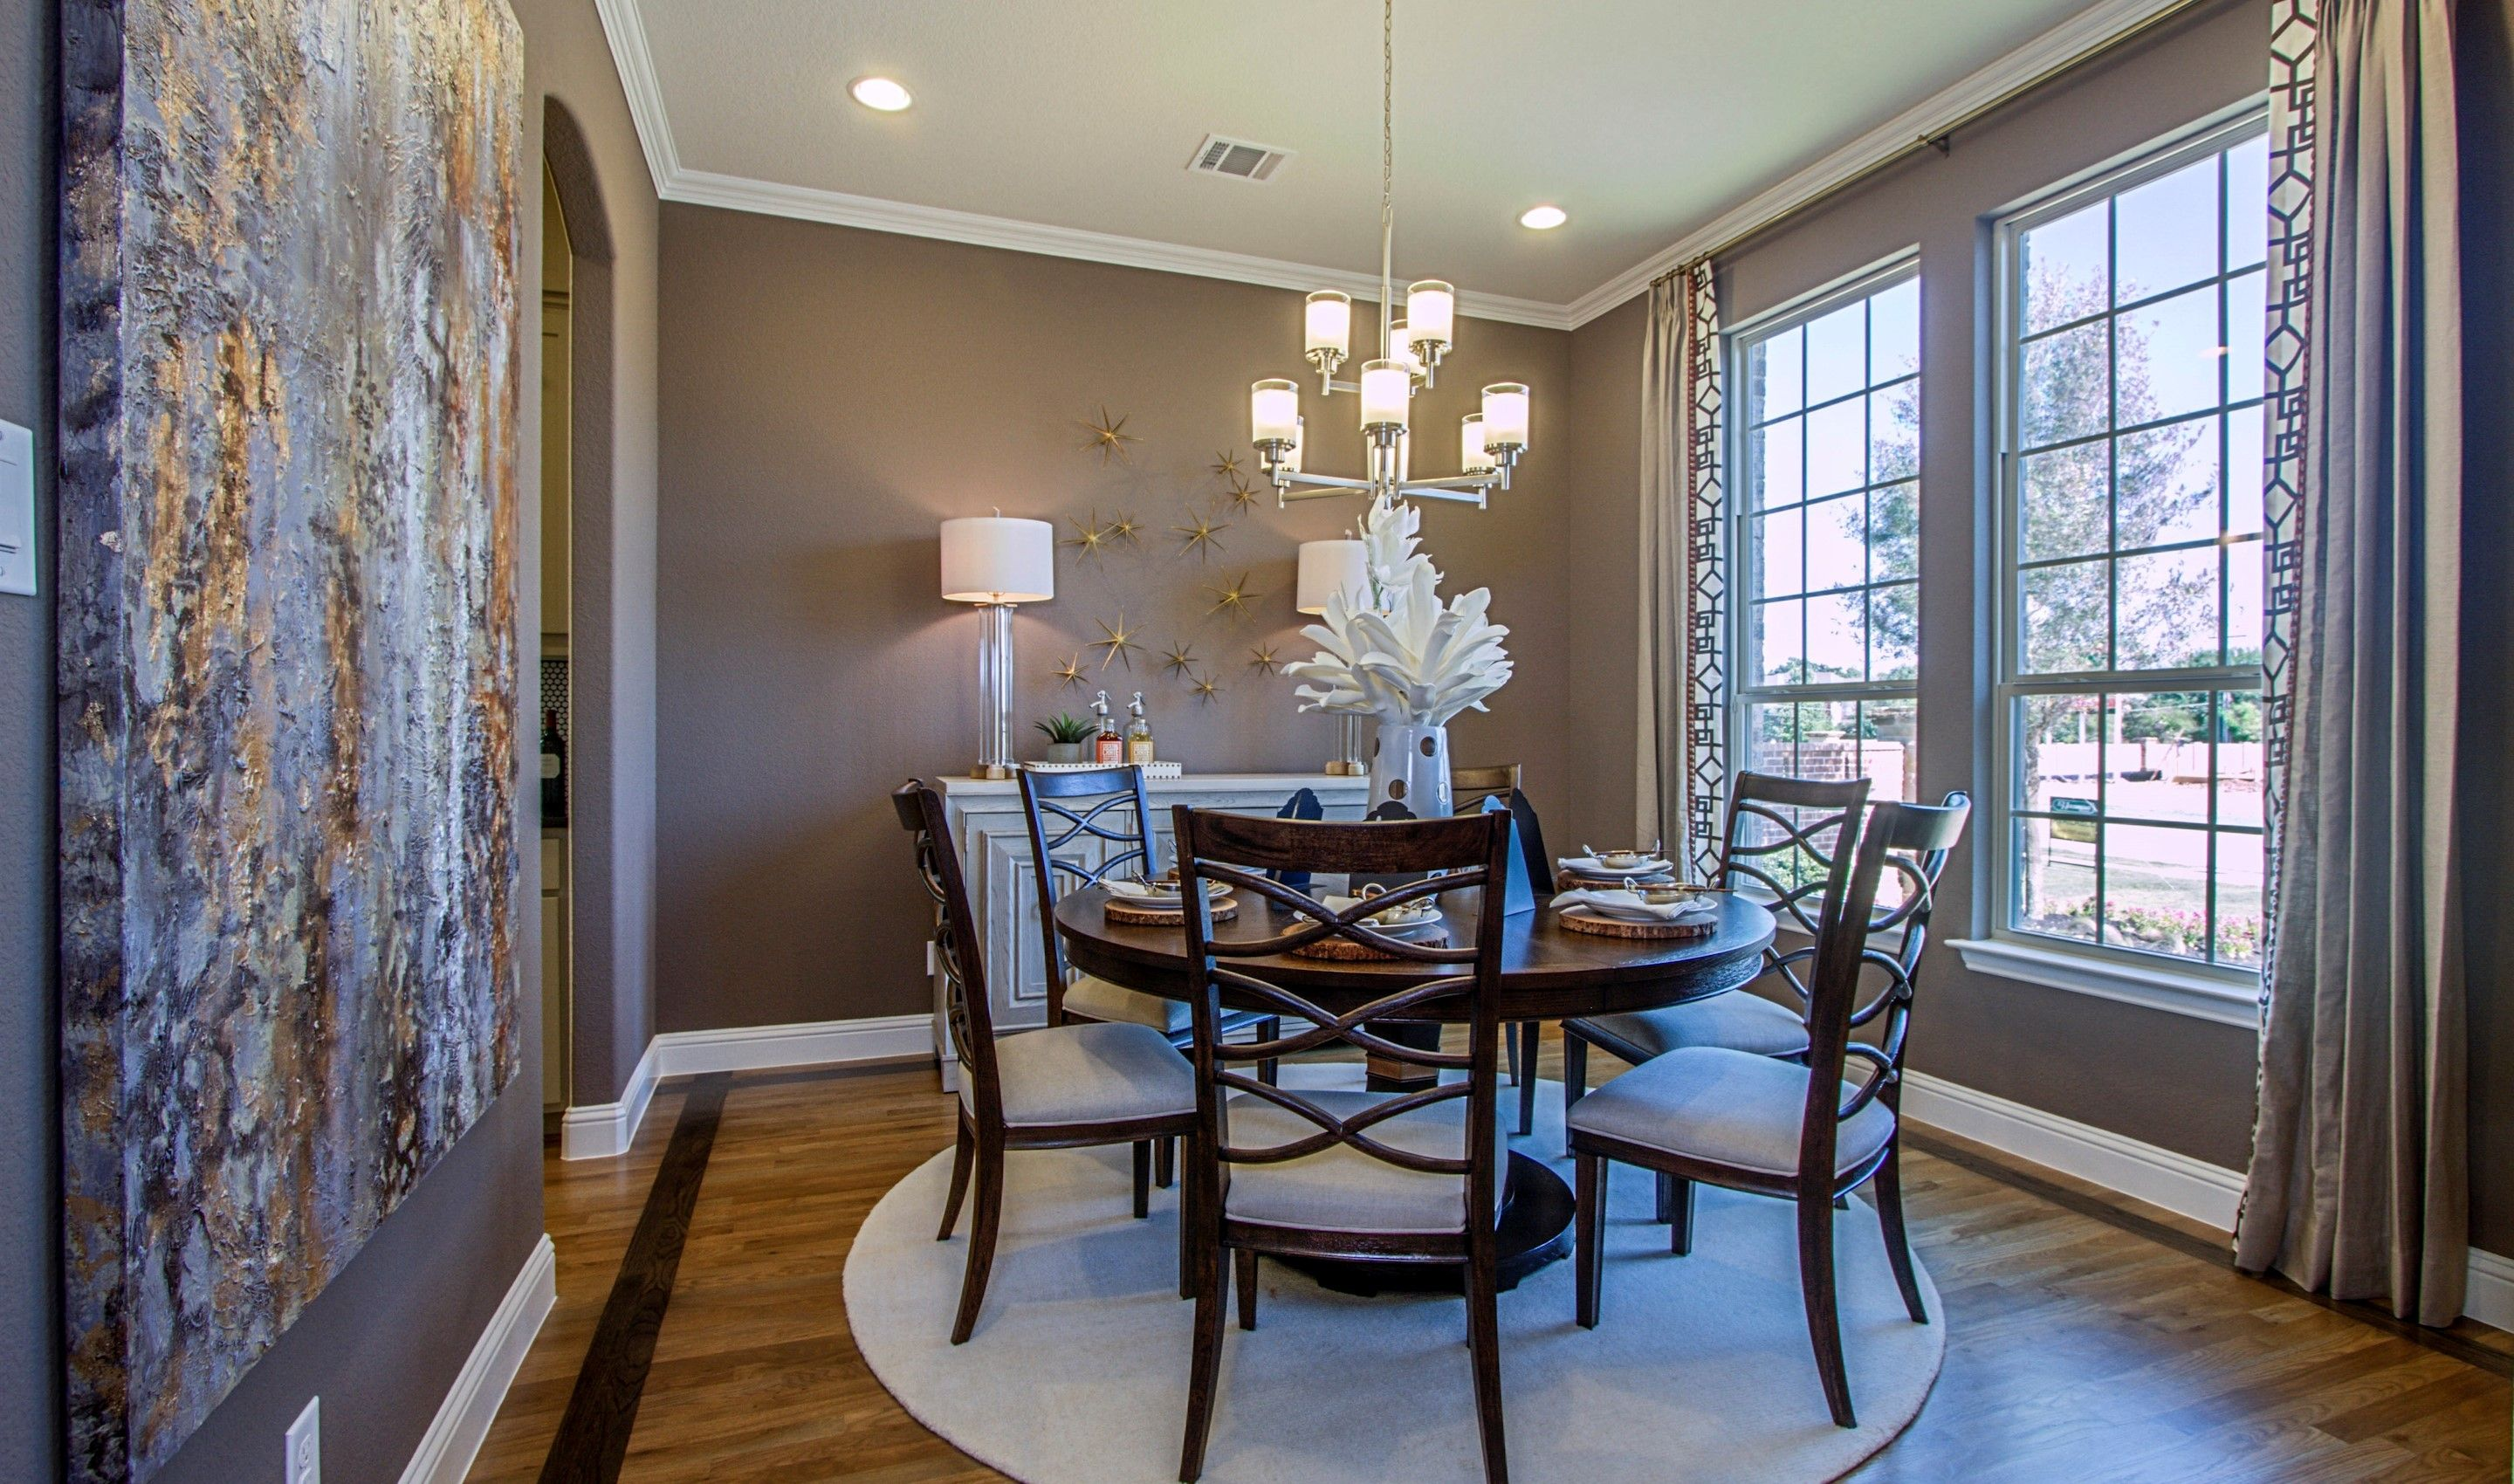 Single Family for Sale at Prestondale 627 Paint Creek Court, Homesite C-1 Murphy, Texas 75094 United States